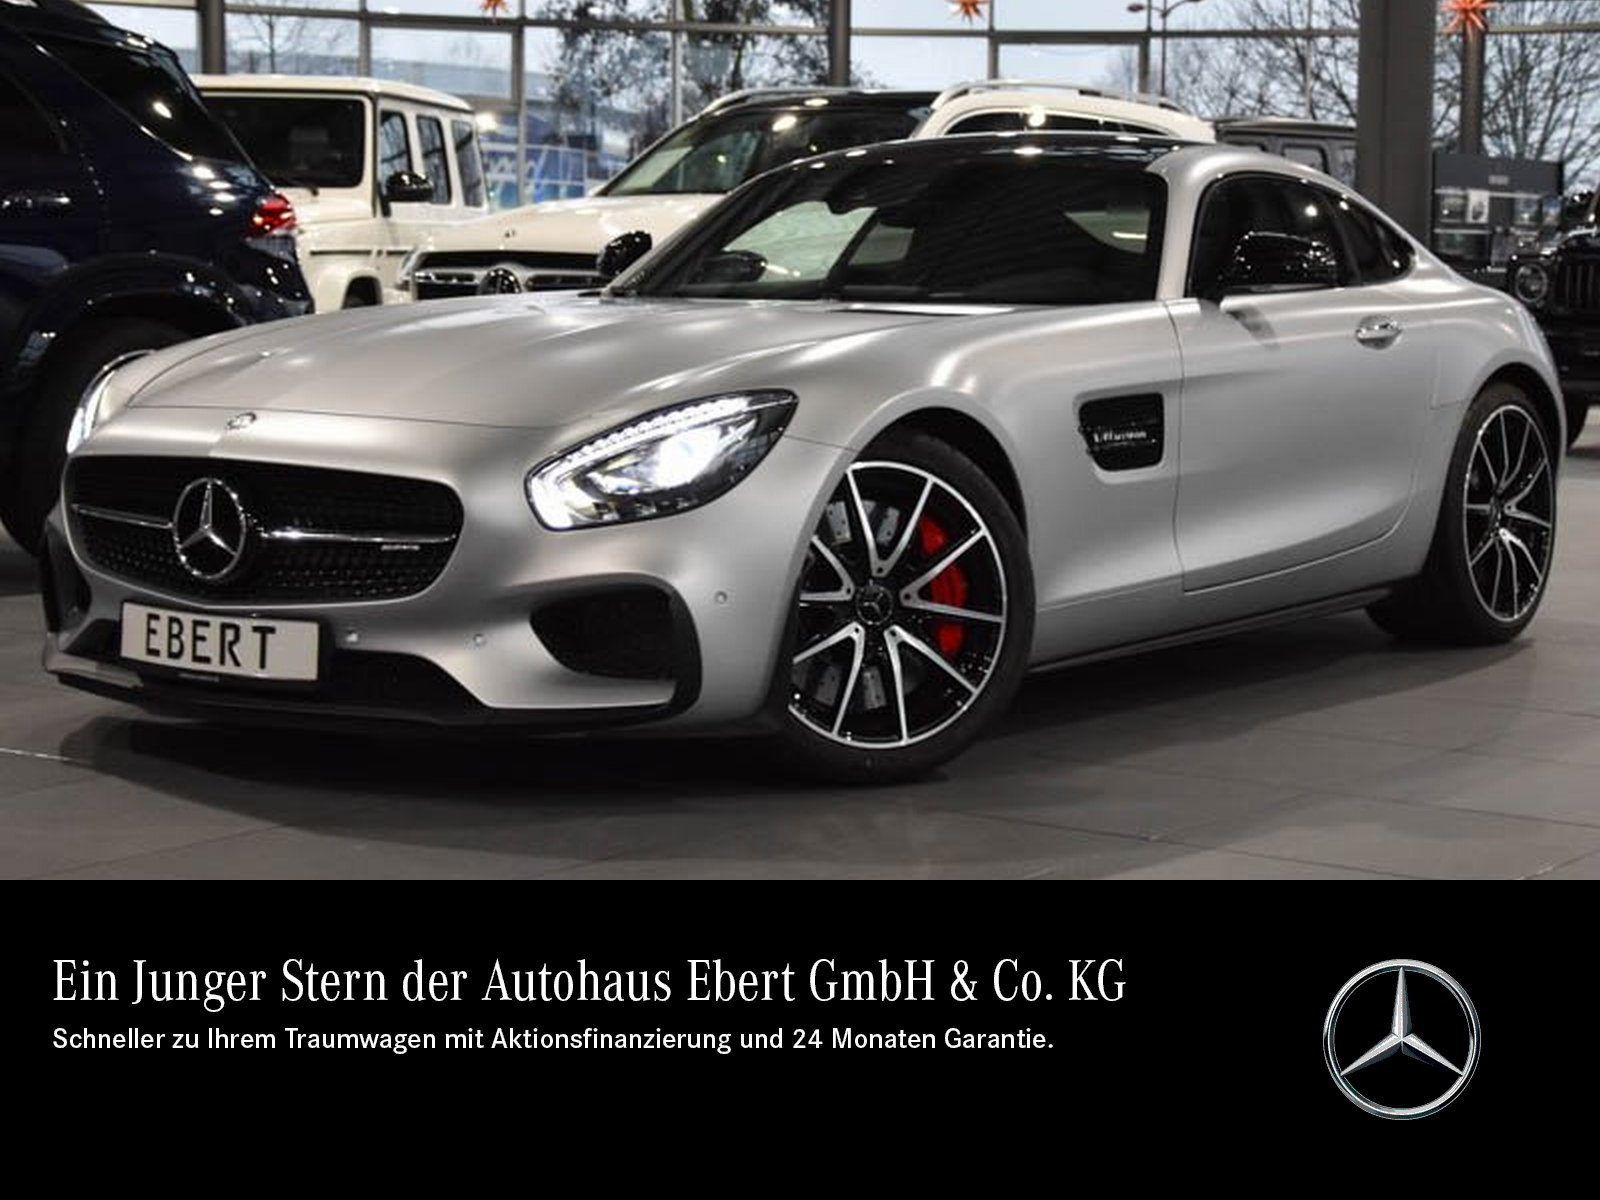 Mercedes-Benz AMG GT S Coupé EDITION 1+CARBONDA+COMAND+LED+PTS, Jahr 2015, Benzin